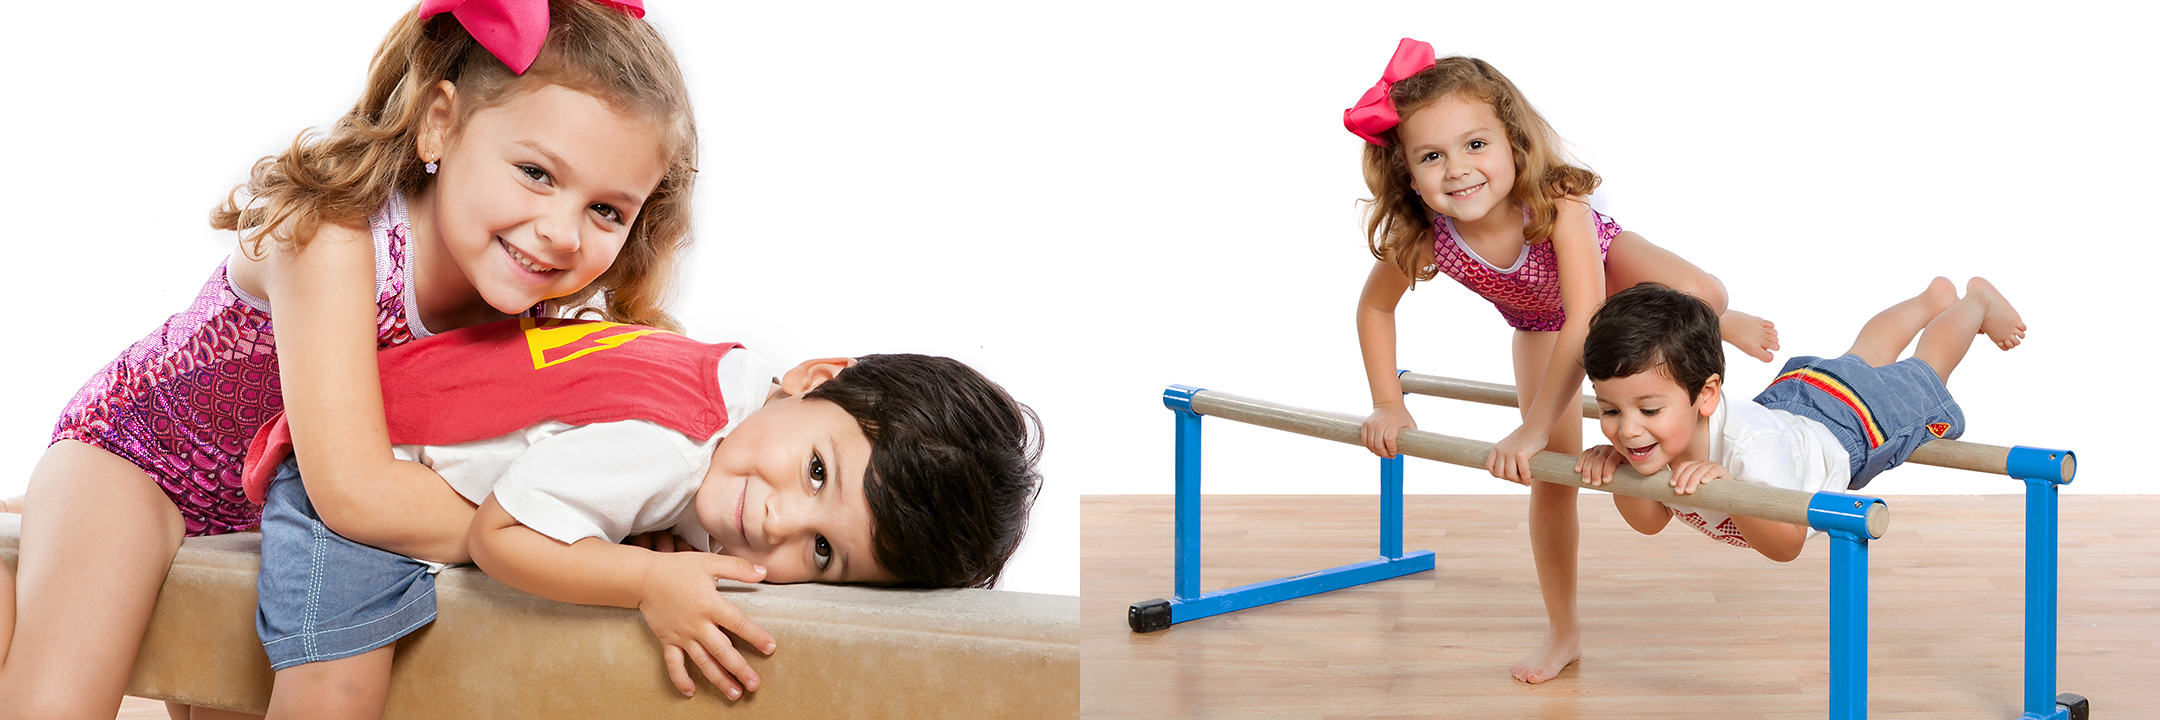 pre-school-gymnastics-photography-05